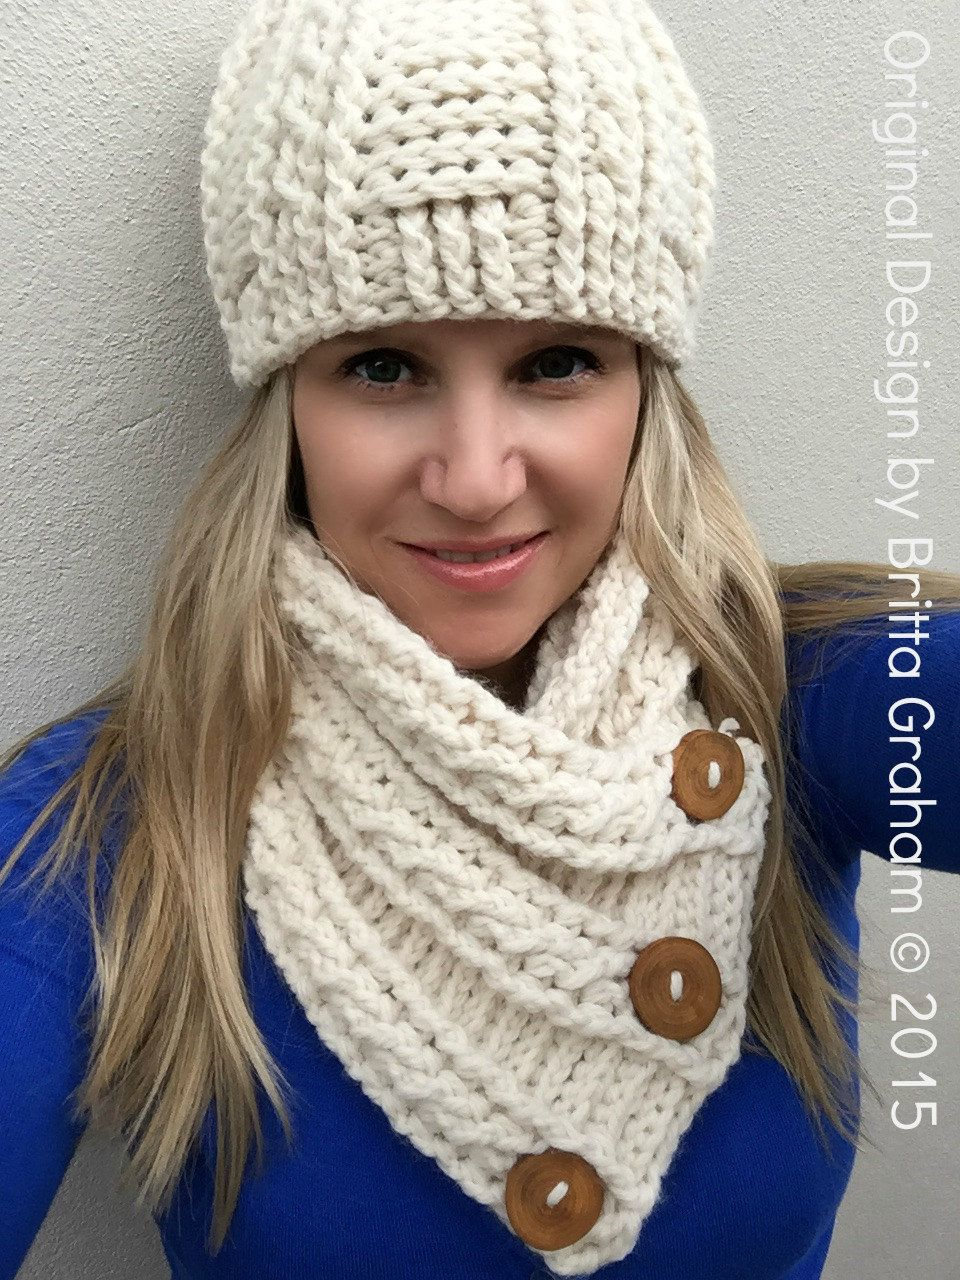 Cabled Scarf Crochet Pattern for chunky yarn - Fisherman Neck Wrap ...